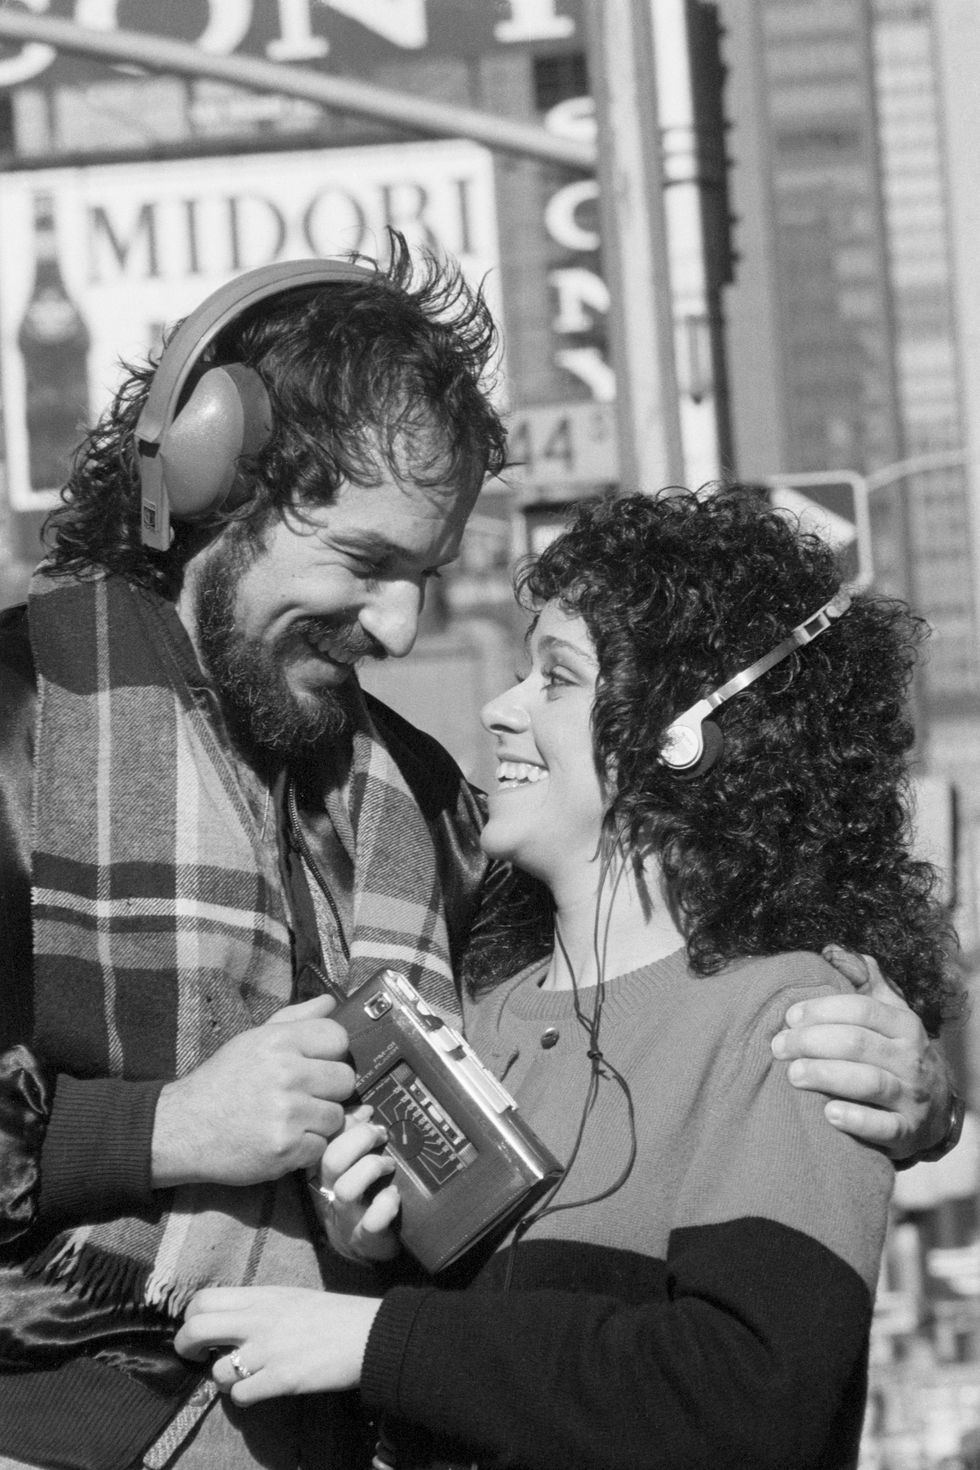 Couple using a Sony Walkman